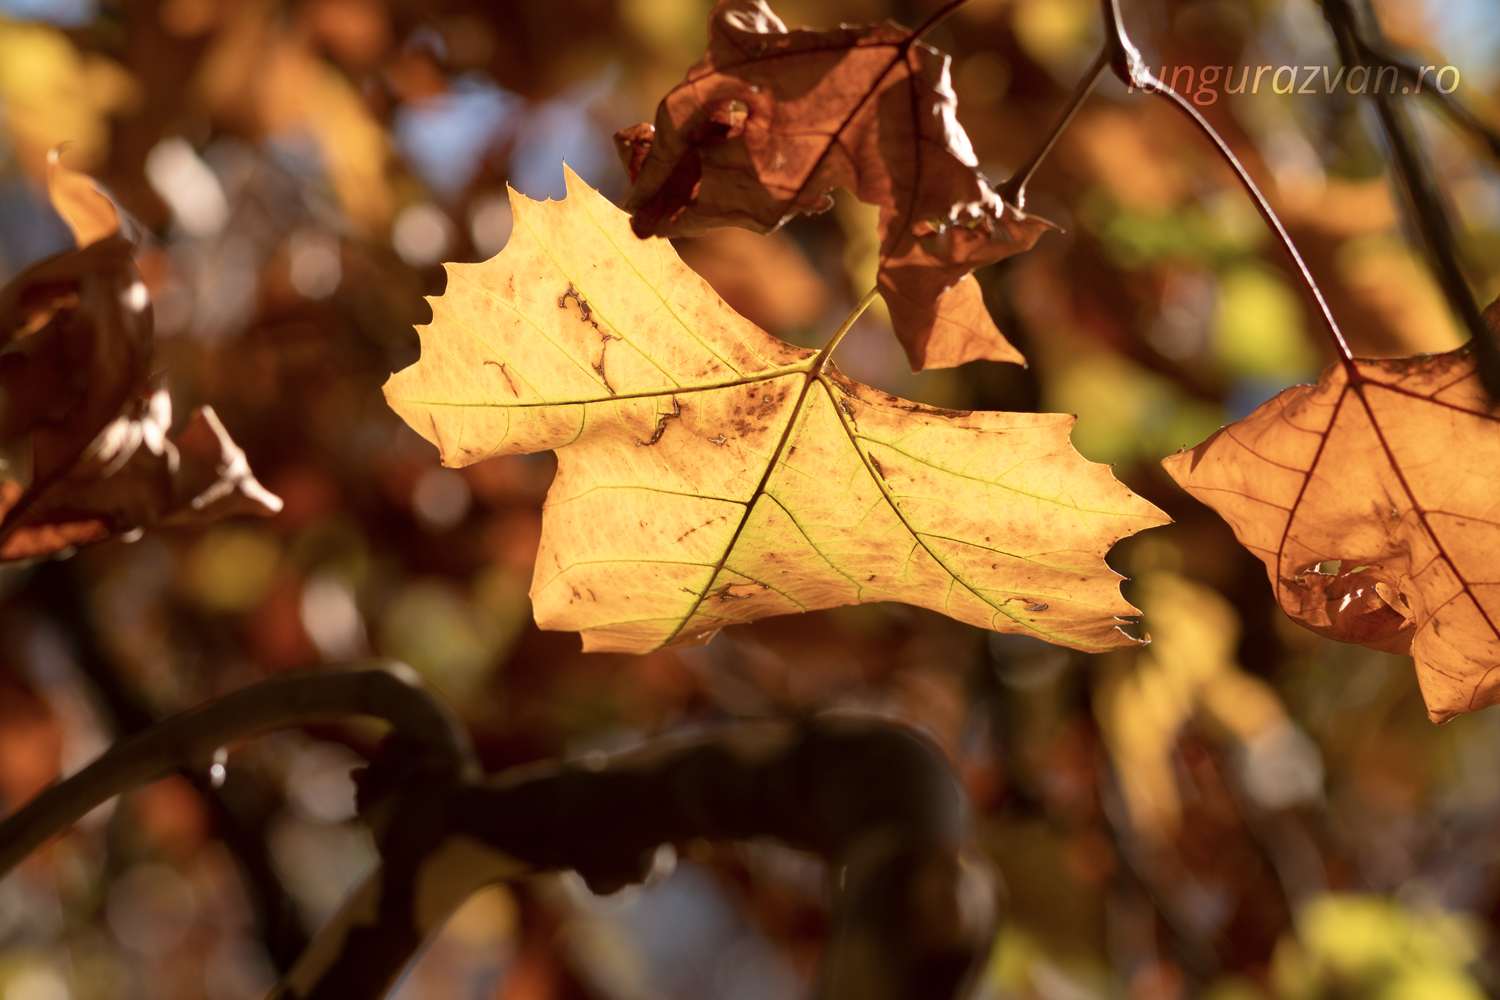 Bits of Yellow, More Brown. Autumn leaves with a rich brown color.